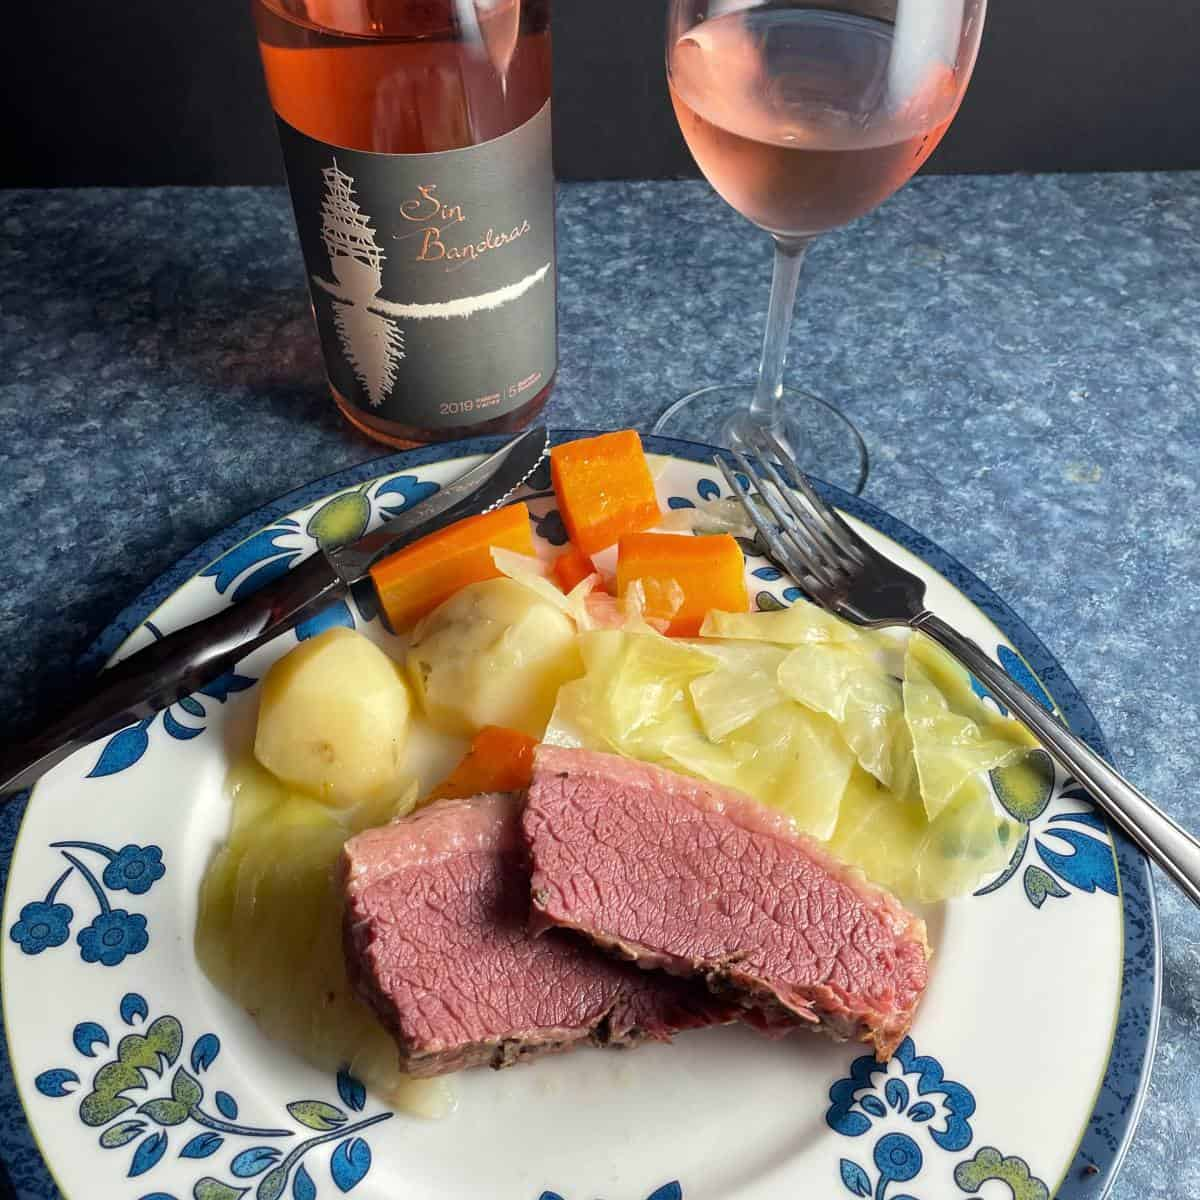 corned beef and cabbage on white plate with blue flowers on the edge, paired with a rosé wine.